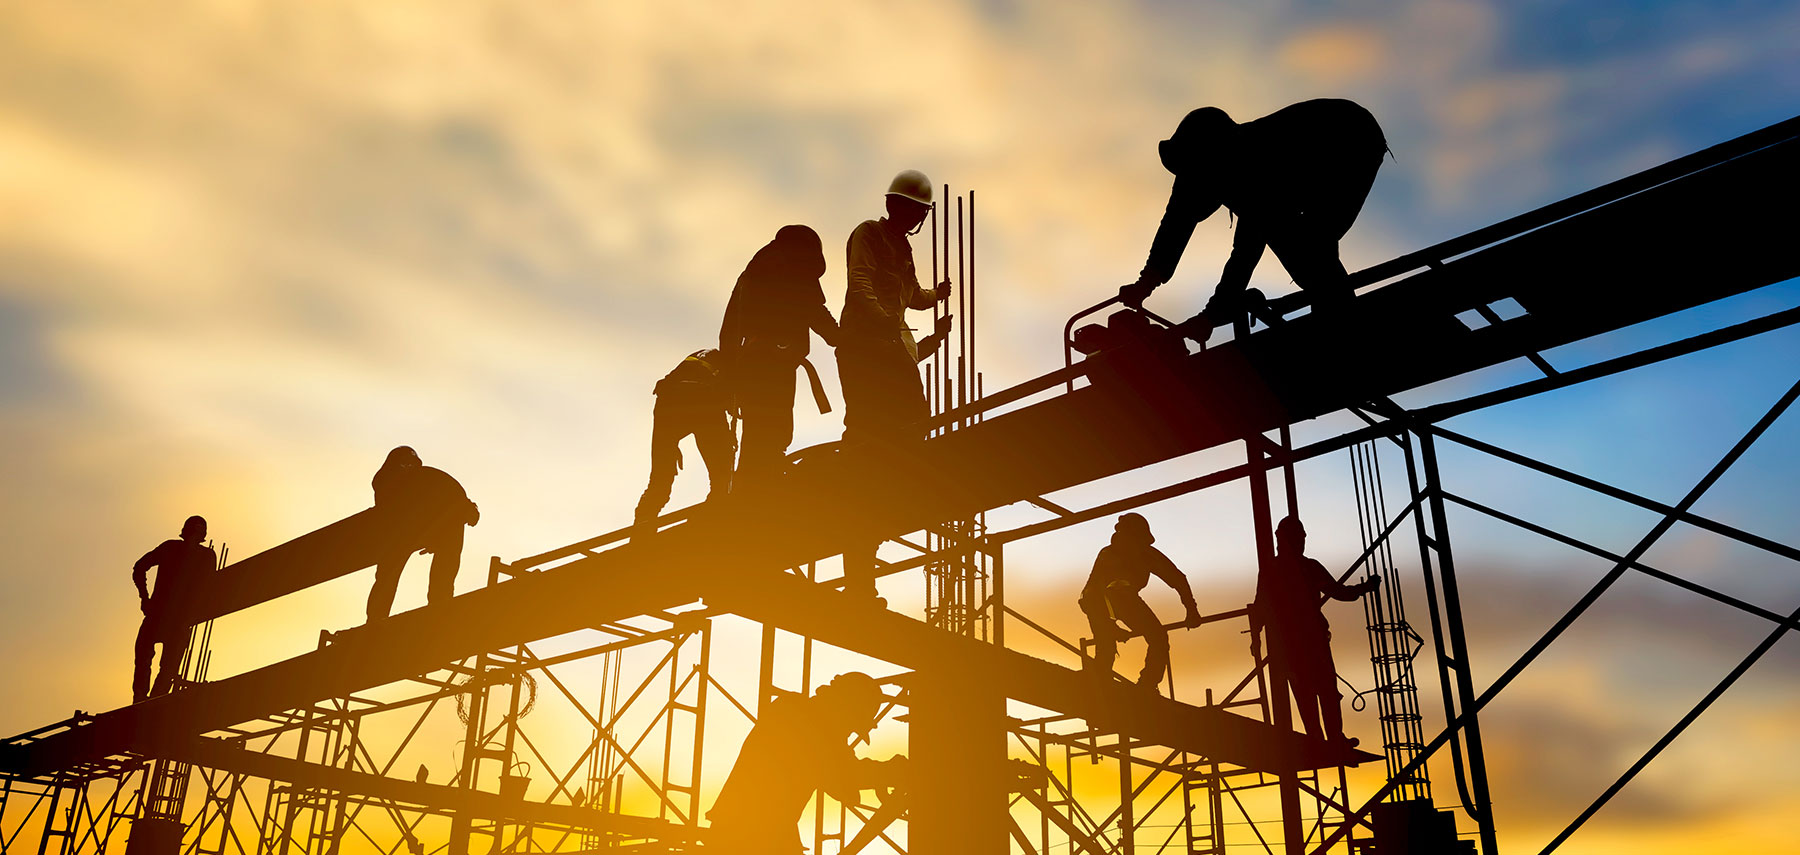 site selection Our expertise includes location strategy analysis, corporate site selection, due diligence and incentives negotiation, in addition to site certification and community.